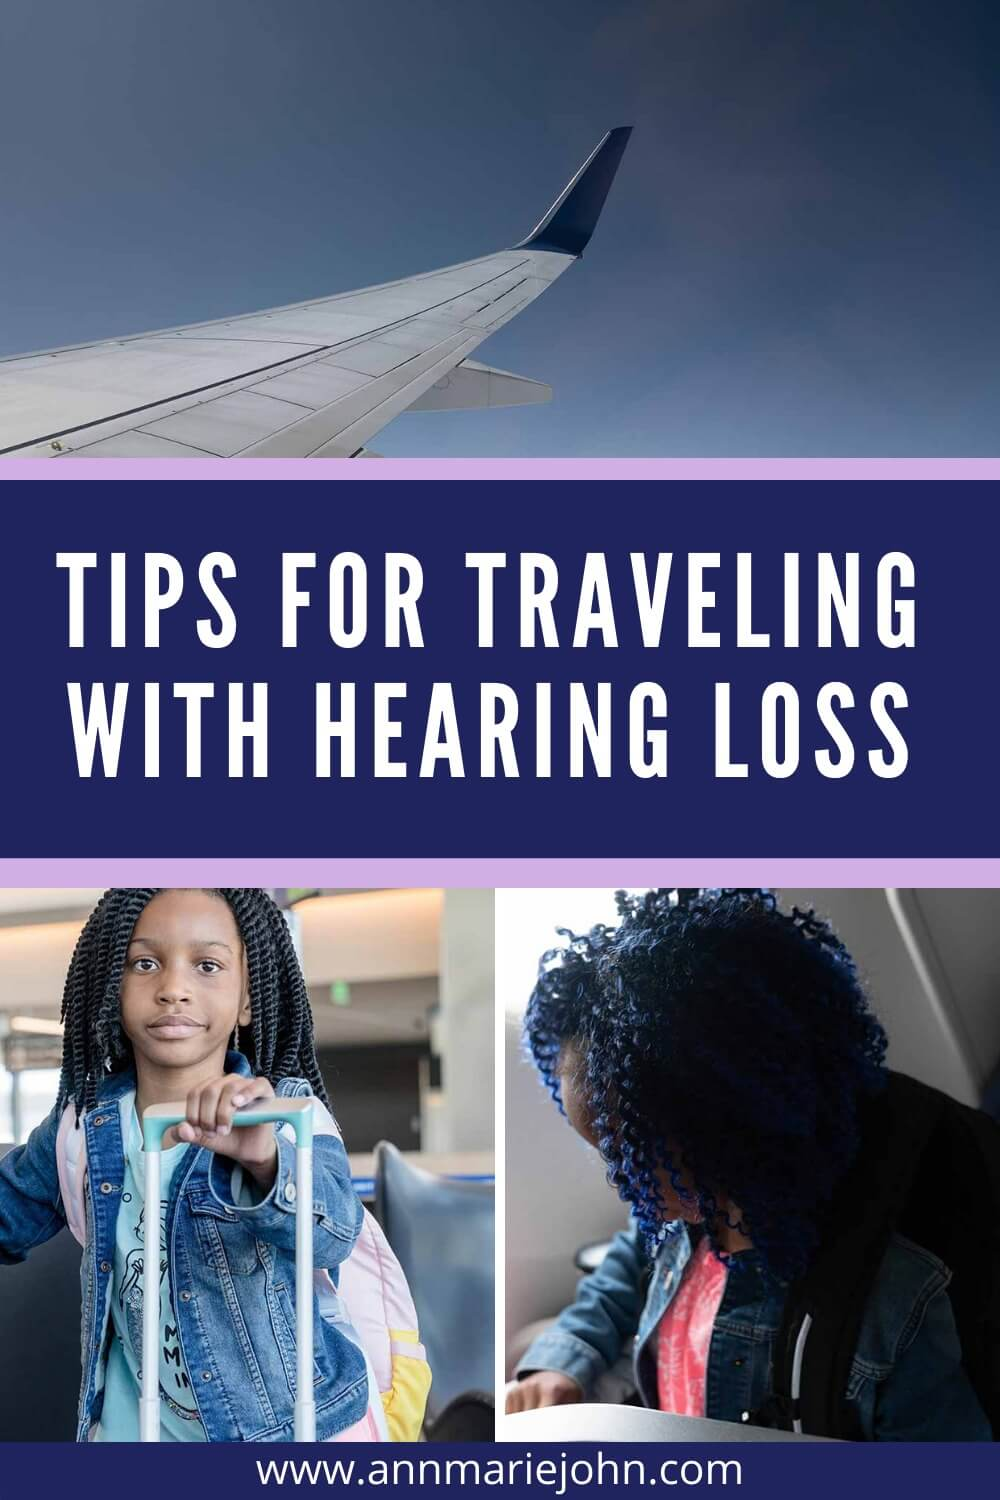 Tips for Those Traveling with Hearing Loss